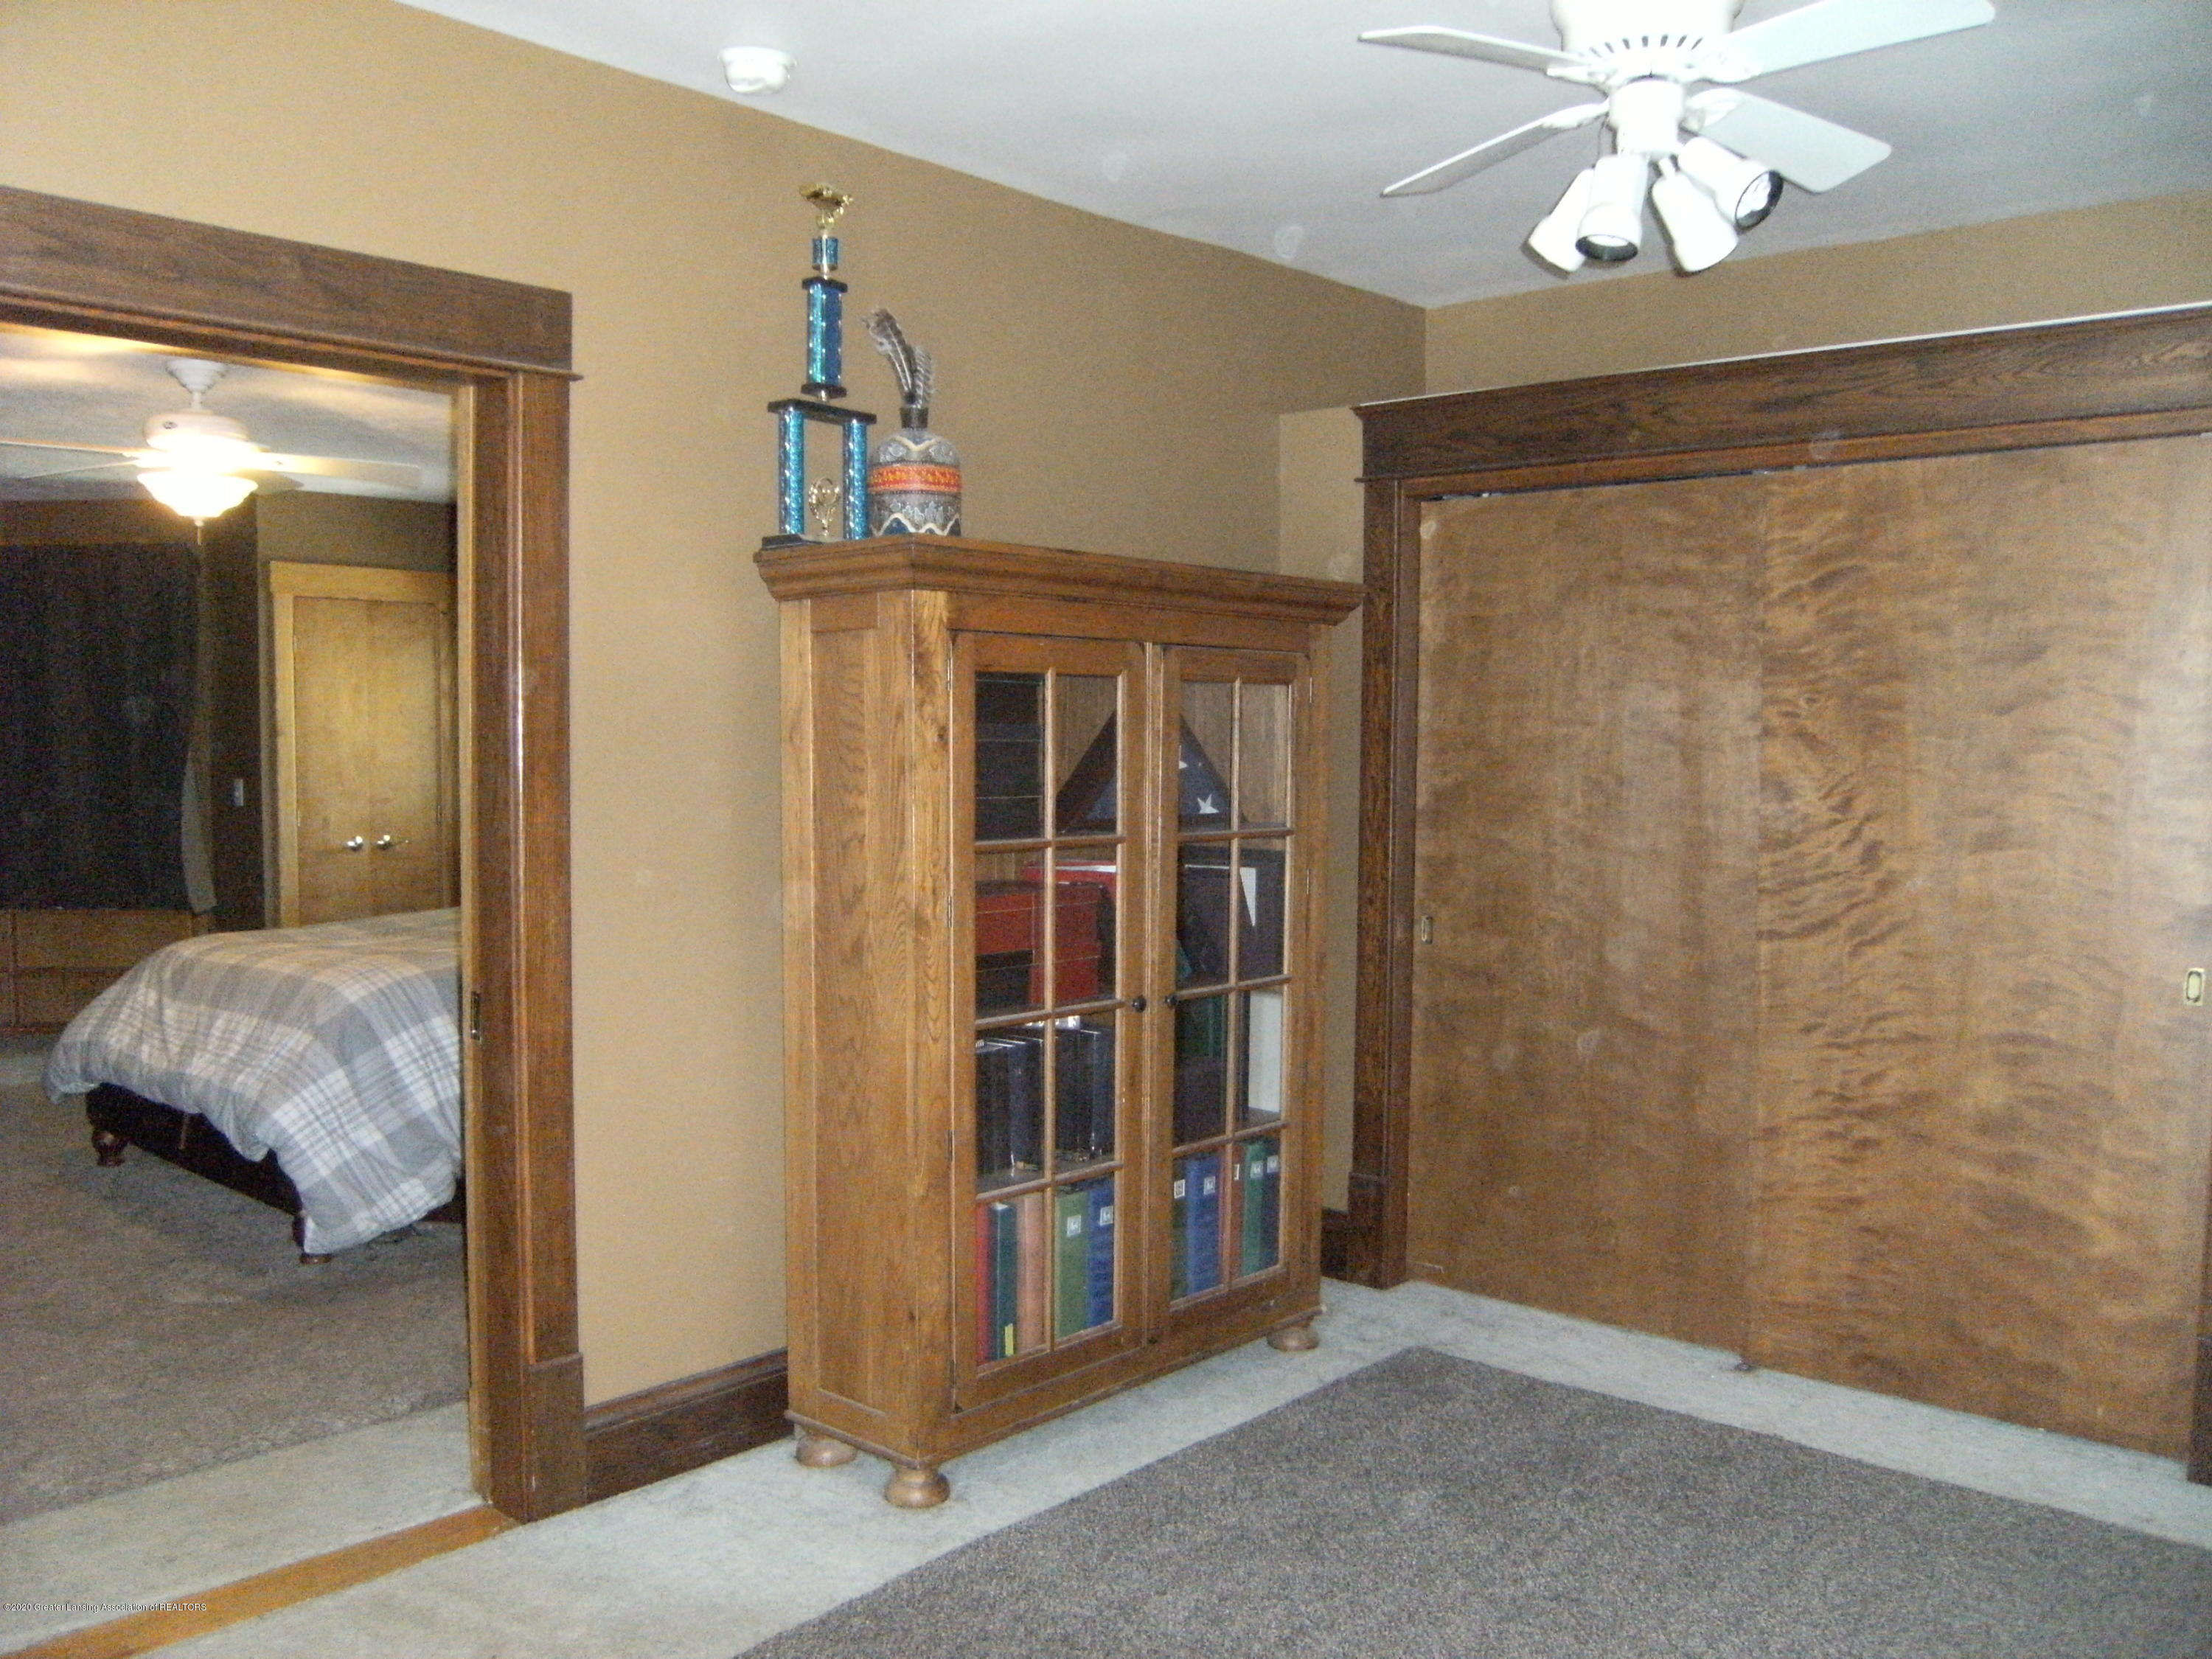 9108 S Krepps Rd - Room leading to mother in law suite - 17